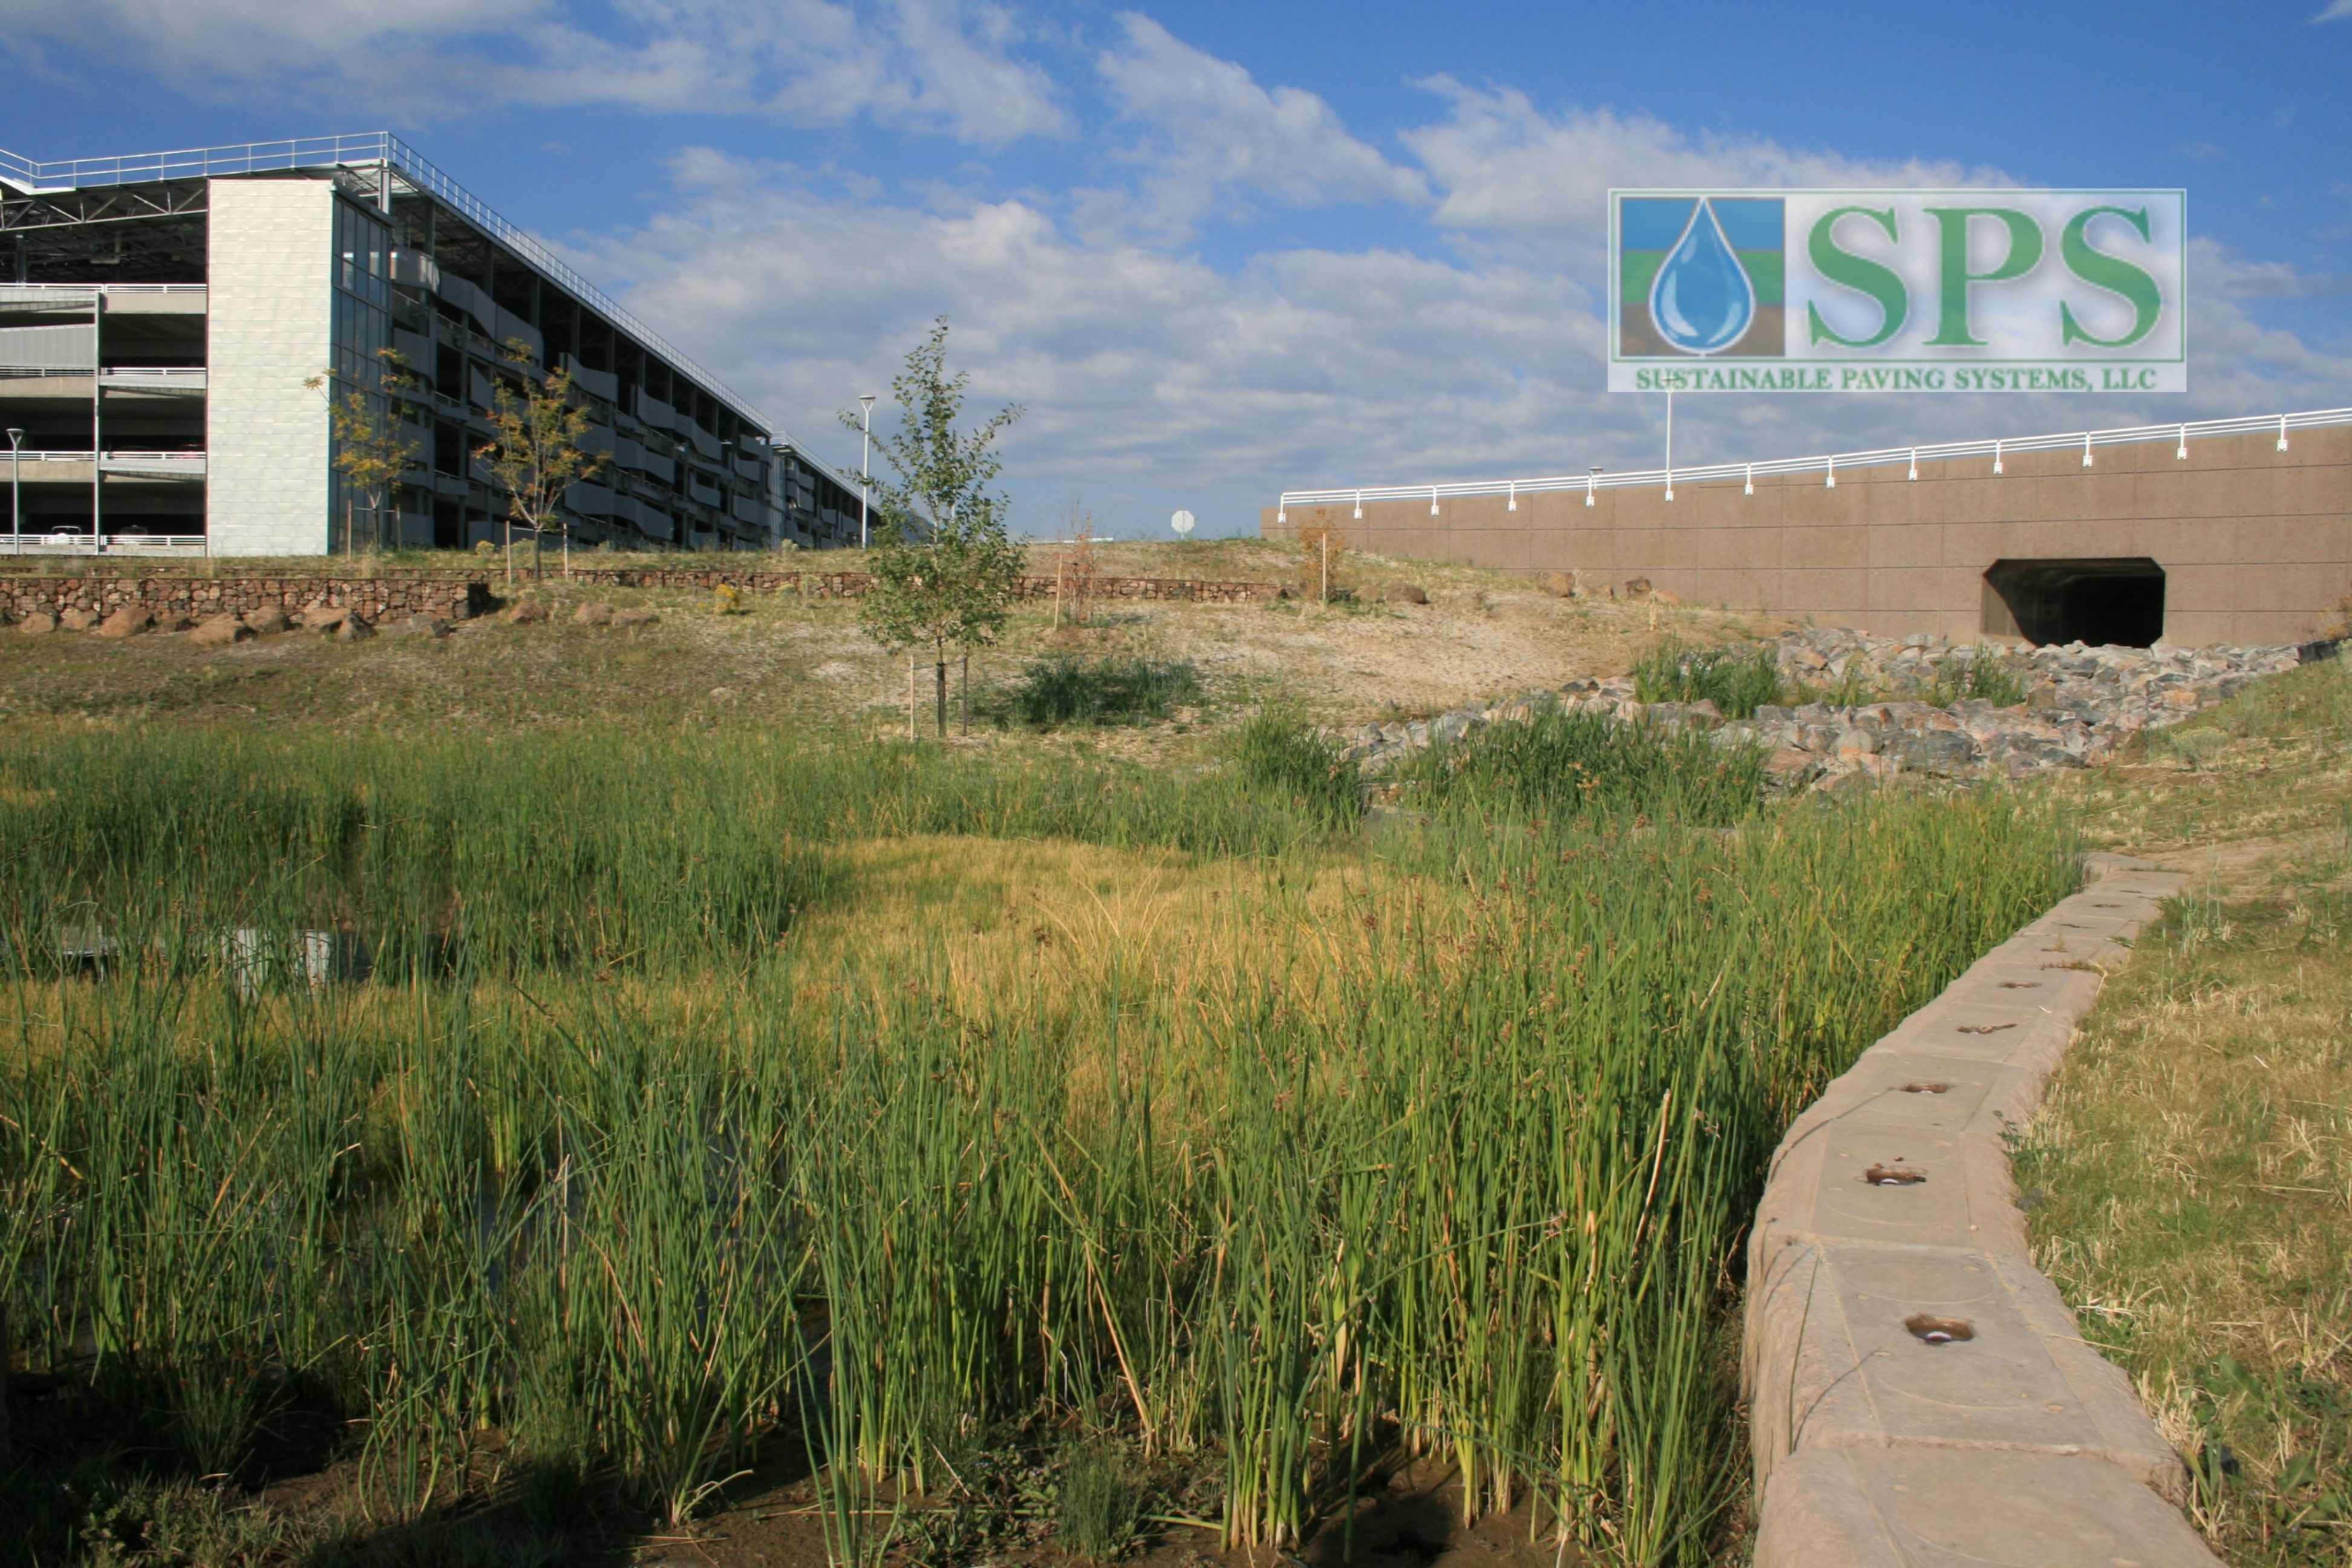 Grasscrete Partially Concealed System At Nrel Detention Pond_02